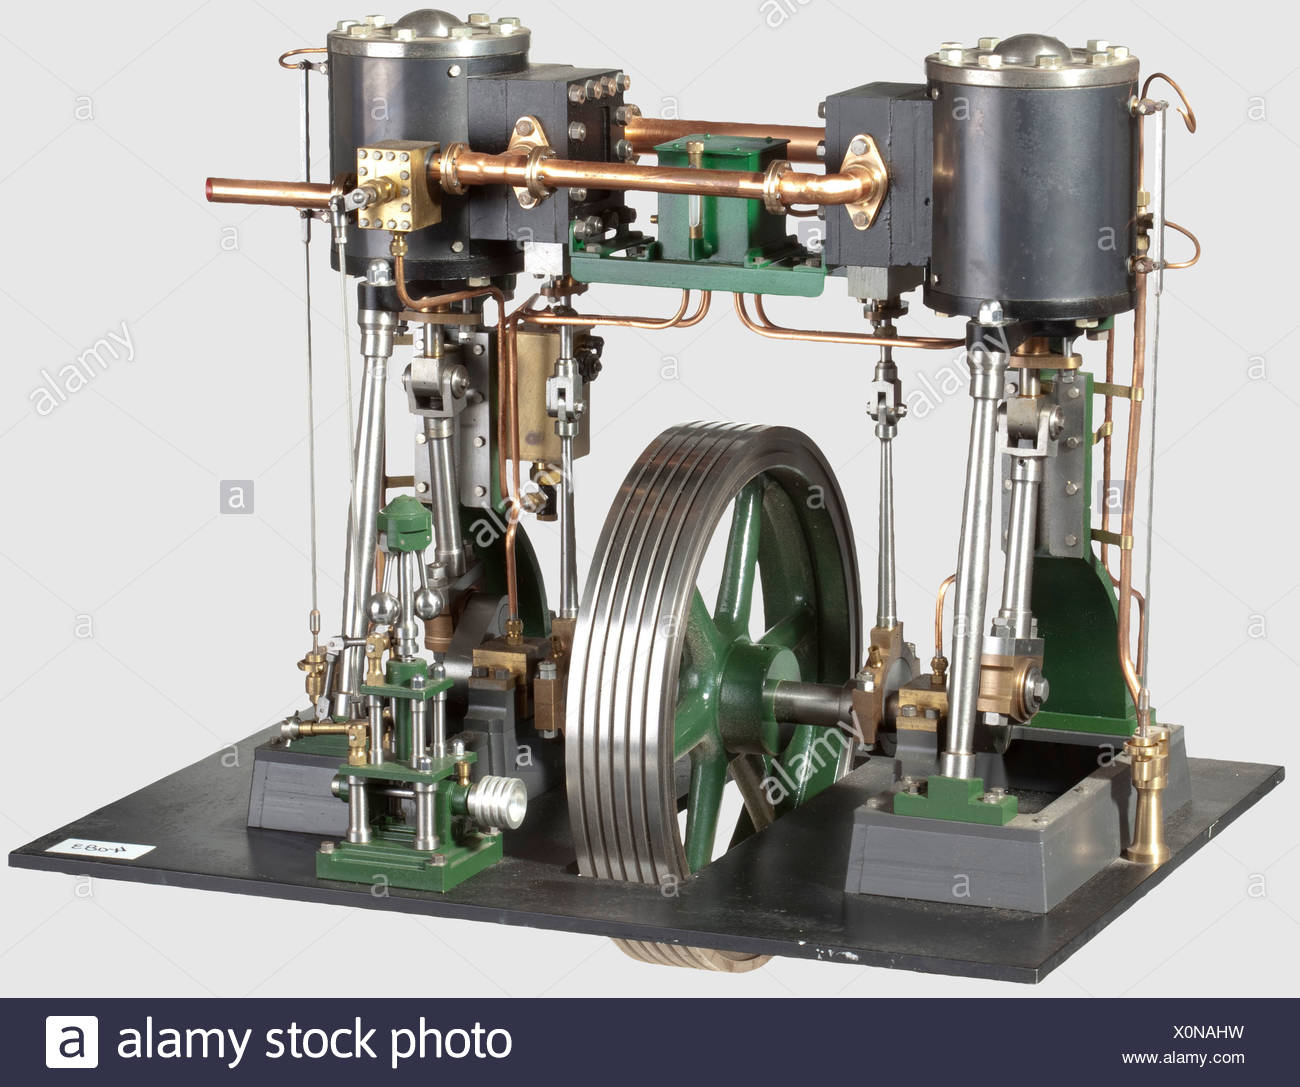 A finely engineered and well presented model twin vertical cylinder stationary engine, Comprising two Stuart No 1 single cylinder engines mounted on a common crankshaft with centrally mounted spoked flywheel with five rope grooves, blued steel clad cylinders 2in bore x 2in stroke, flanged inlet and exhaust pipes, draincocks and pipes, multi-rope driven governor, linkage and valve, mechanical lubricator and pipework, cast beds and metal floor, finished in green, black and polished brightwork. 37 x 40 cm, historic, historical, 20th century, steam engine, steam en, Additional-Rights-Clearences-NA - Stock Image